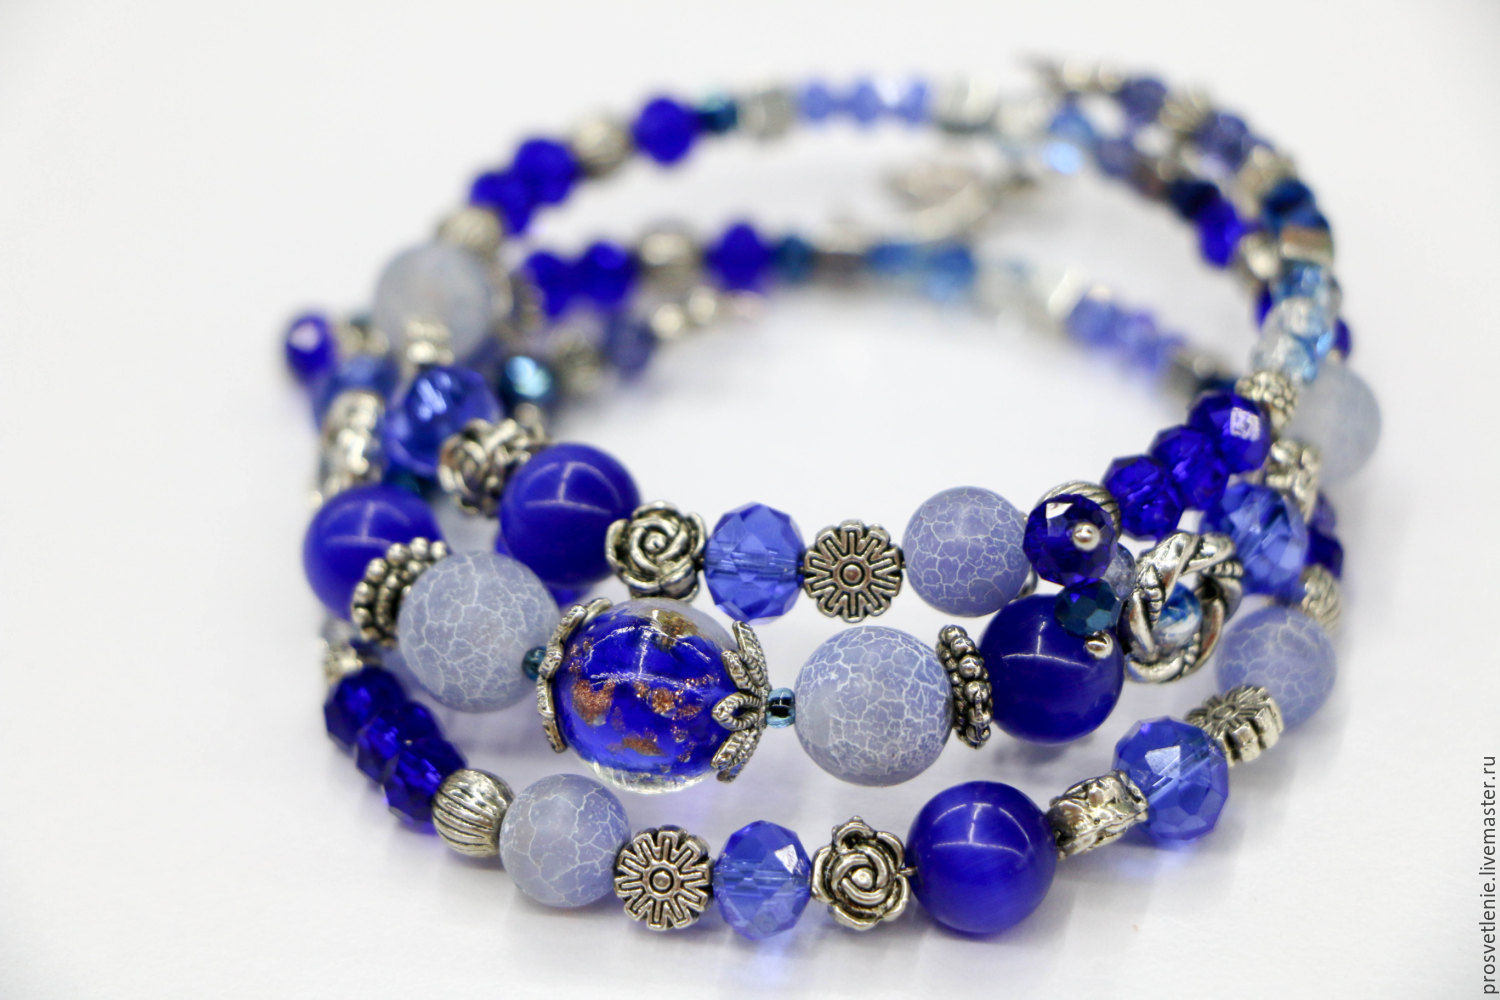 Decoration Svetlana Boiko to buy at the Fair Masters. Stylish blue bracelet made of natural stones in the style boho. Buy bahamasnet of natural stones in gift girl woman